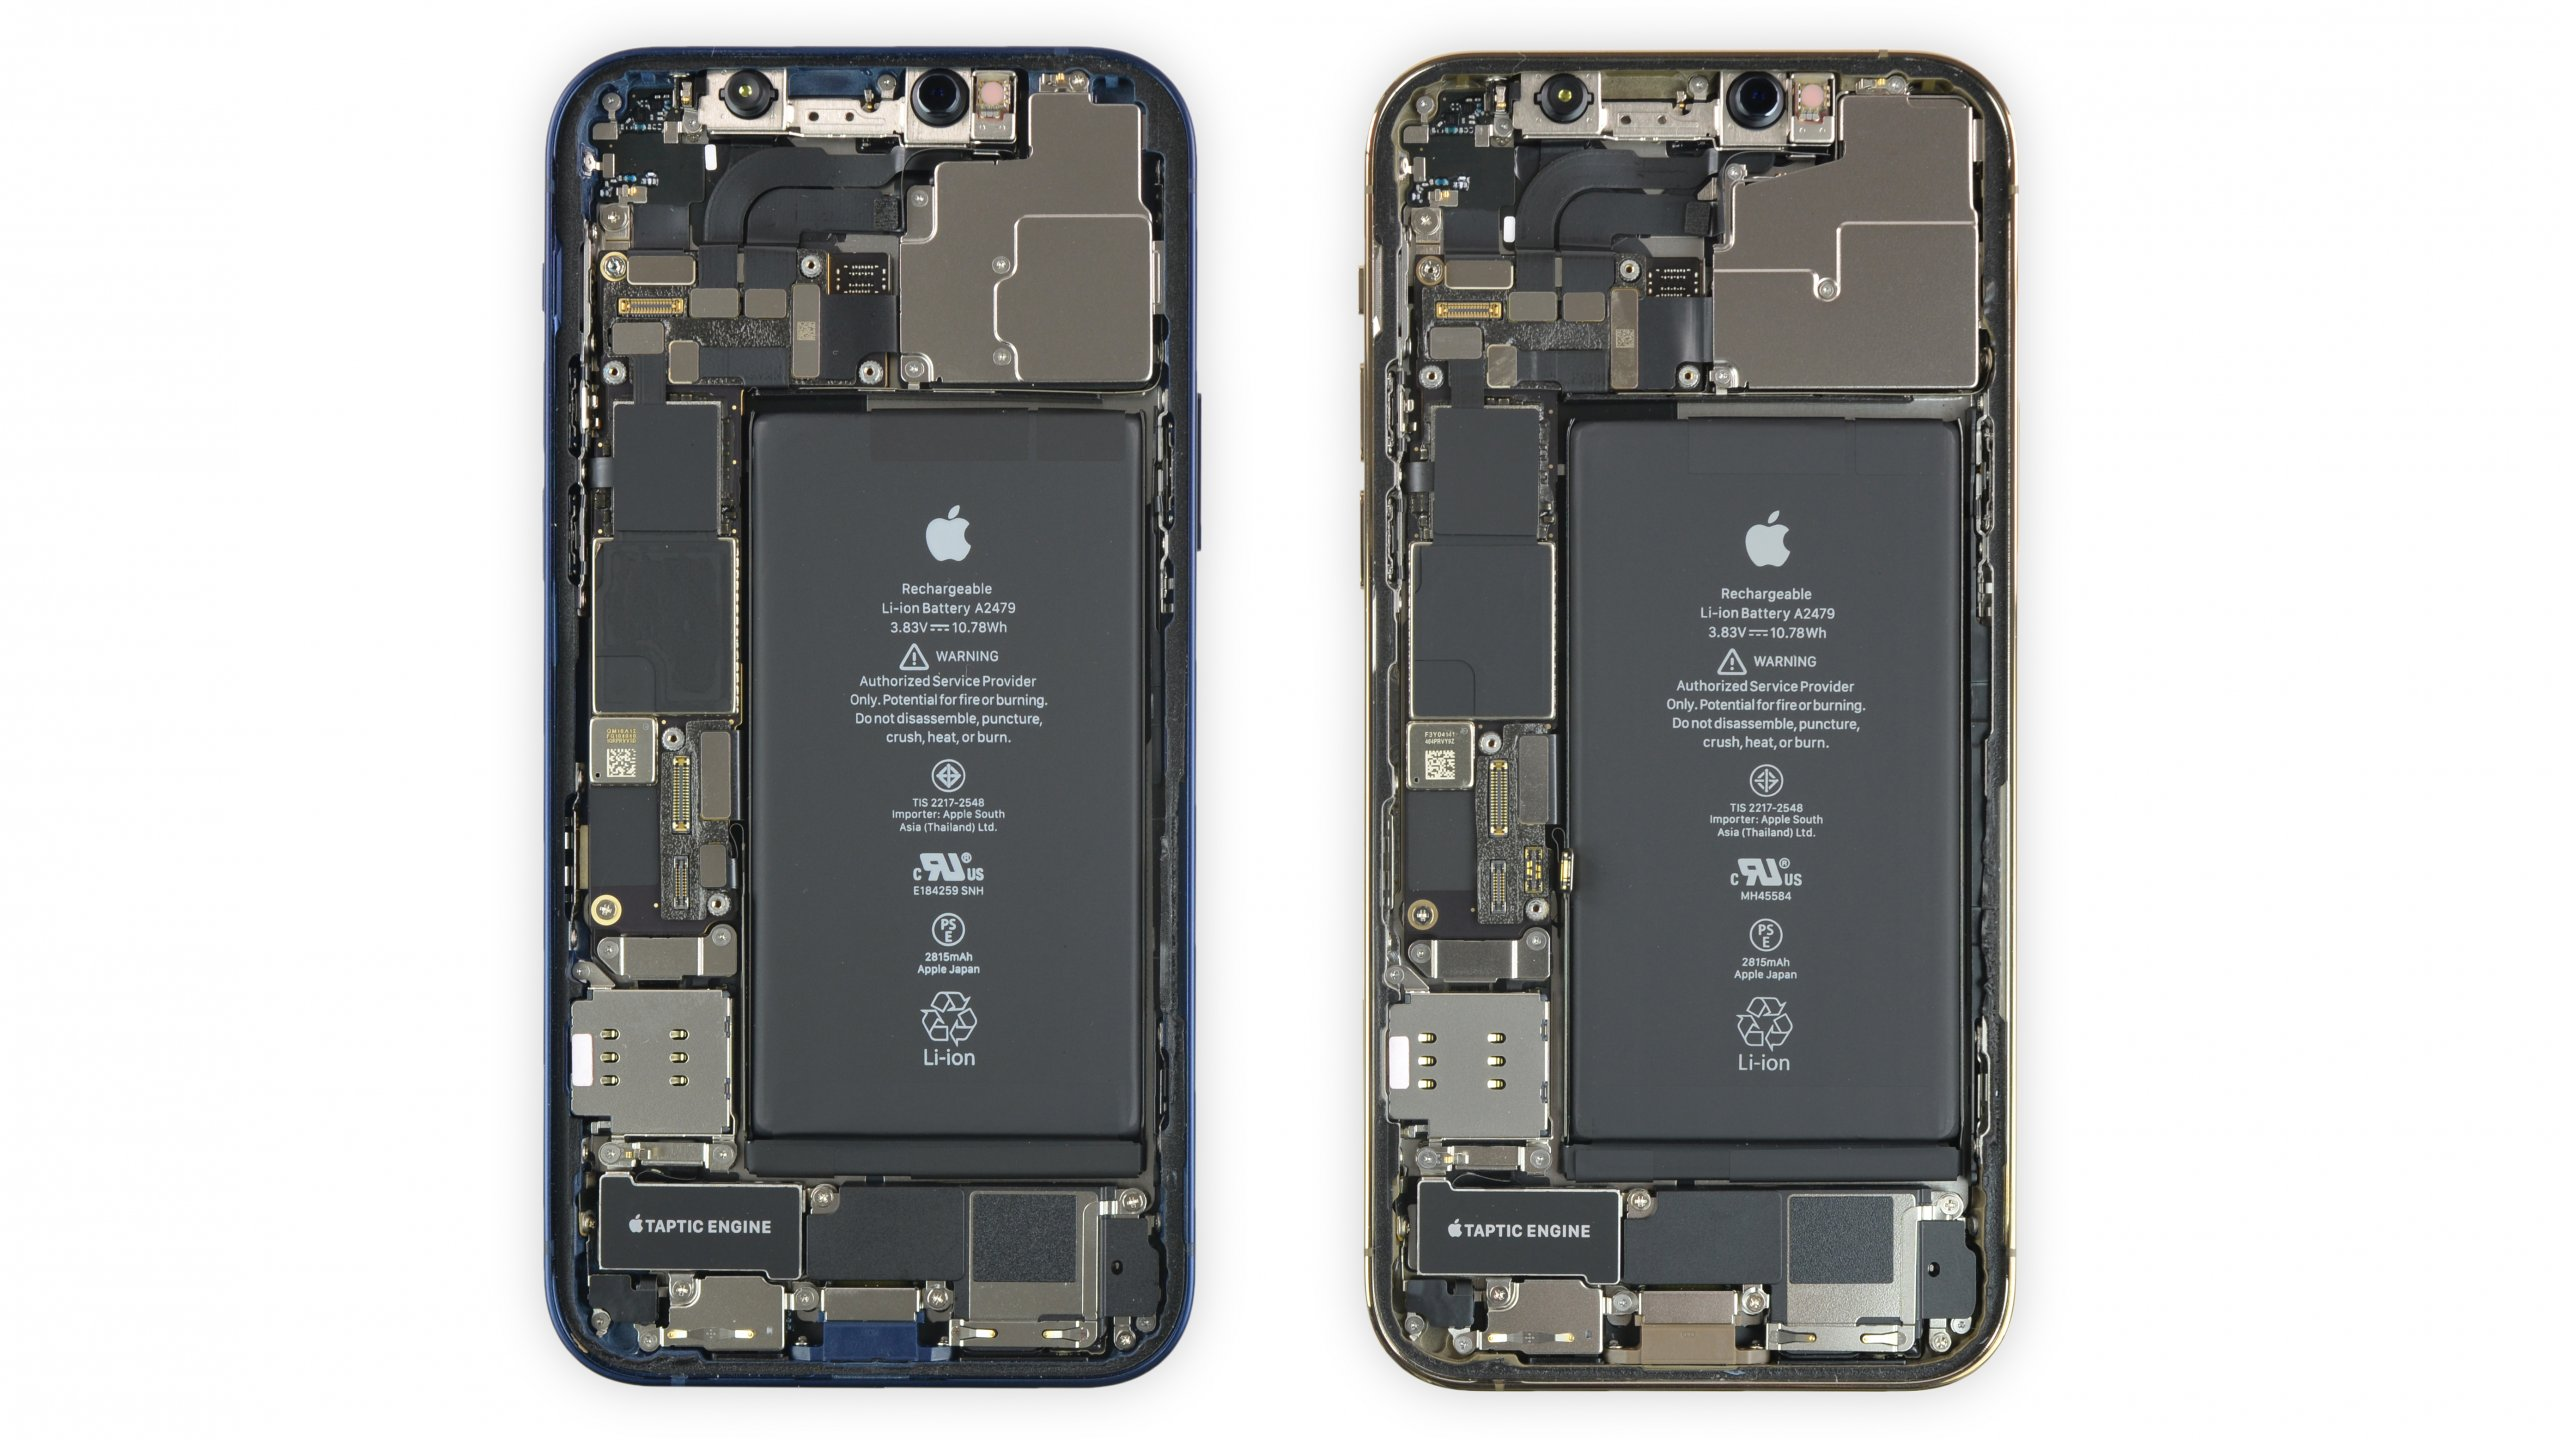 Teardown Wallpapers iPhone 21 and iPhone 21 Pro Internals   iFixit